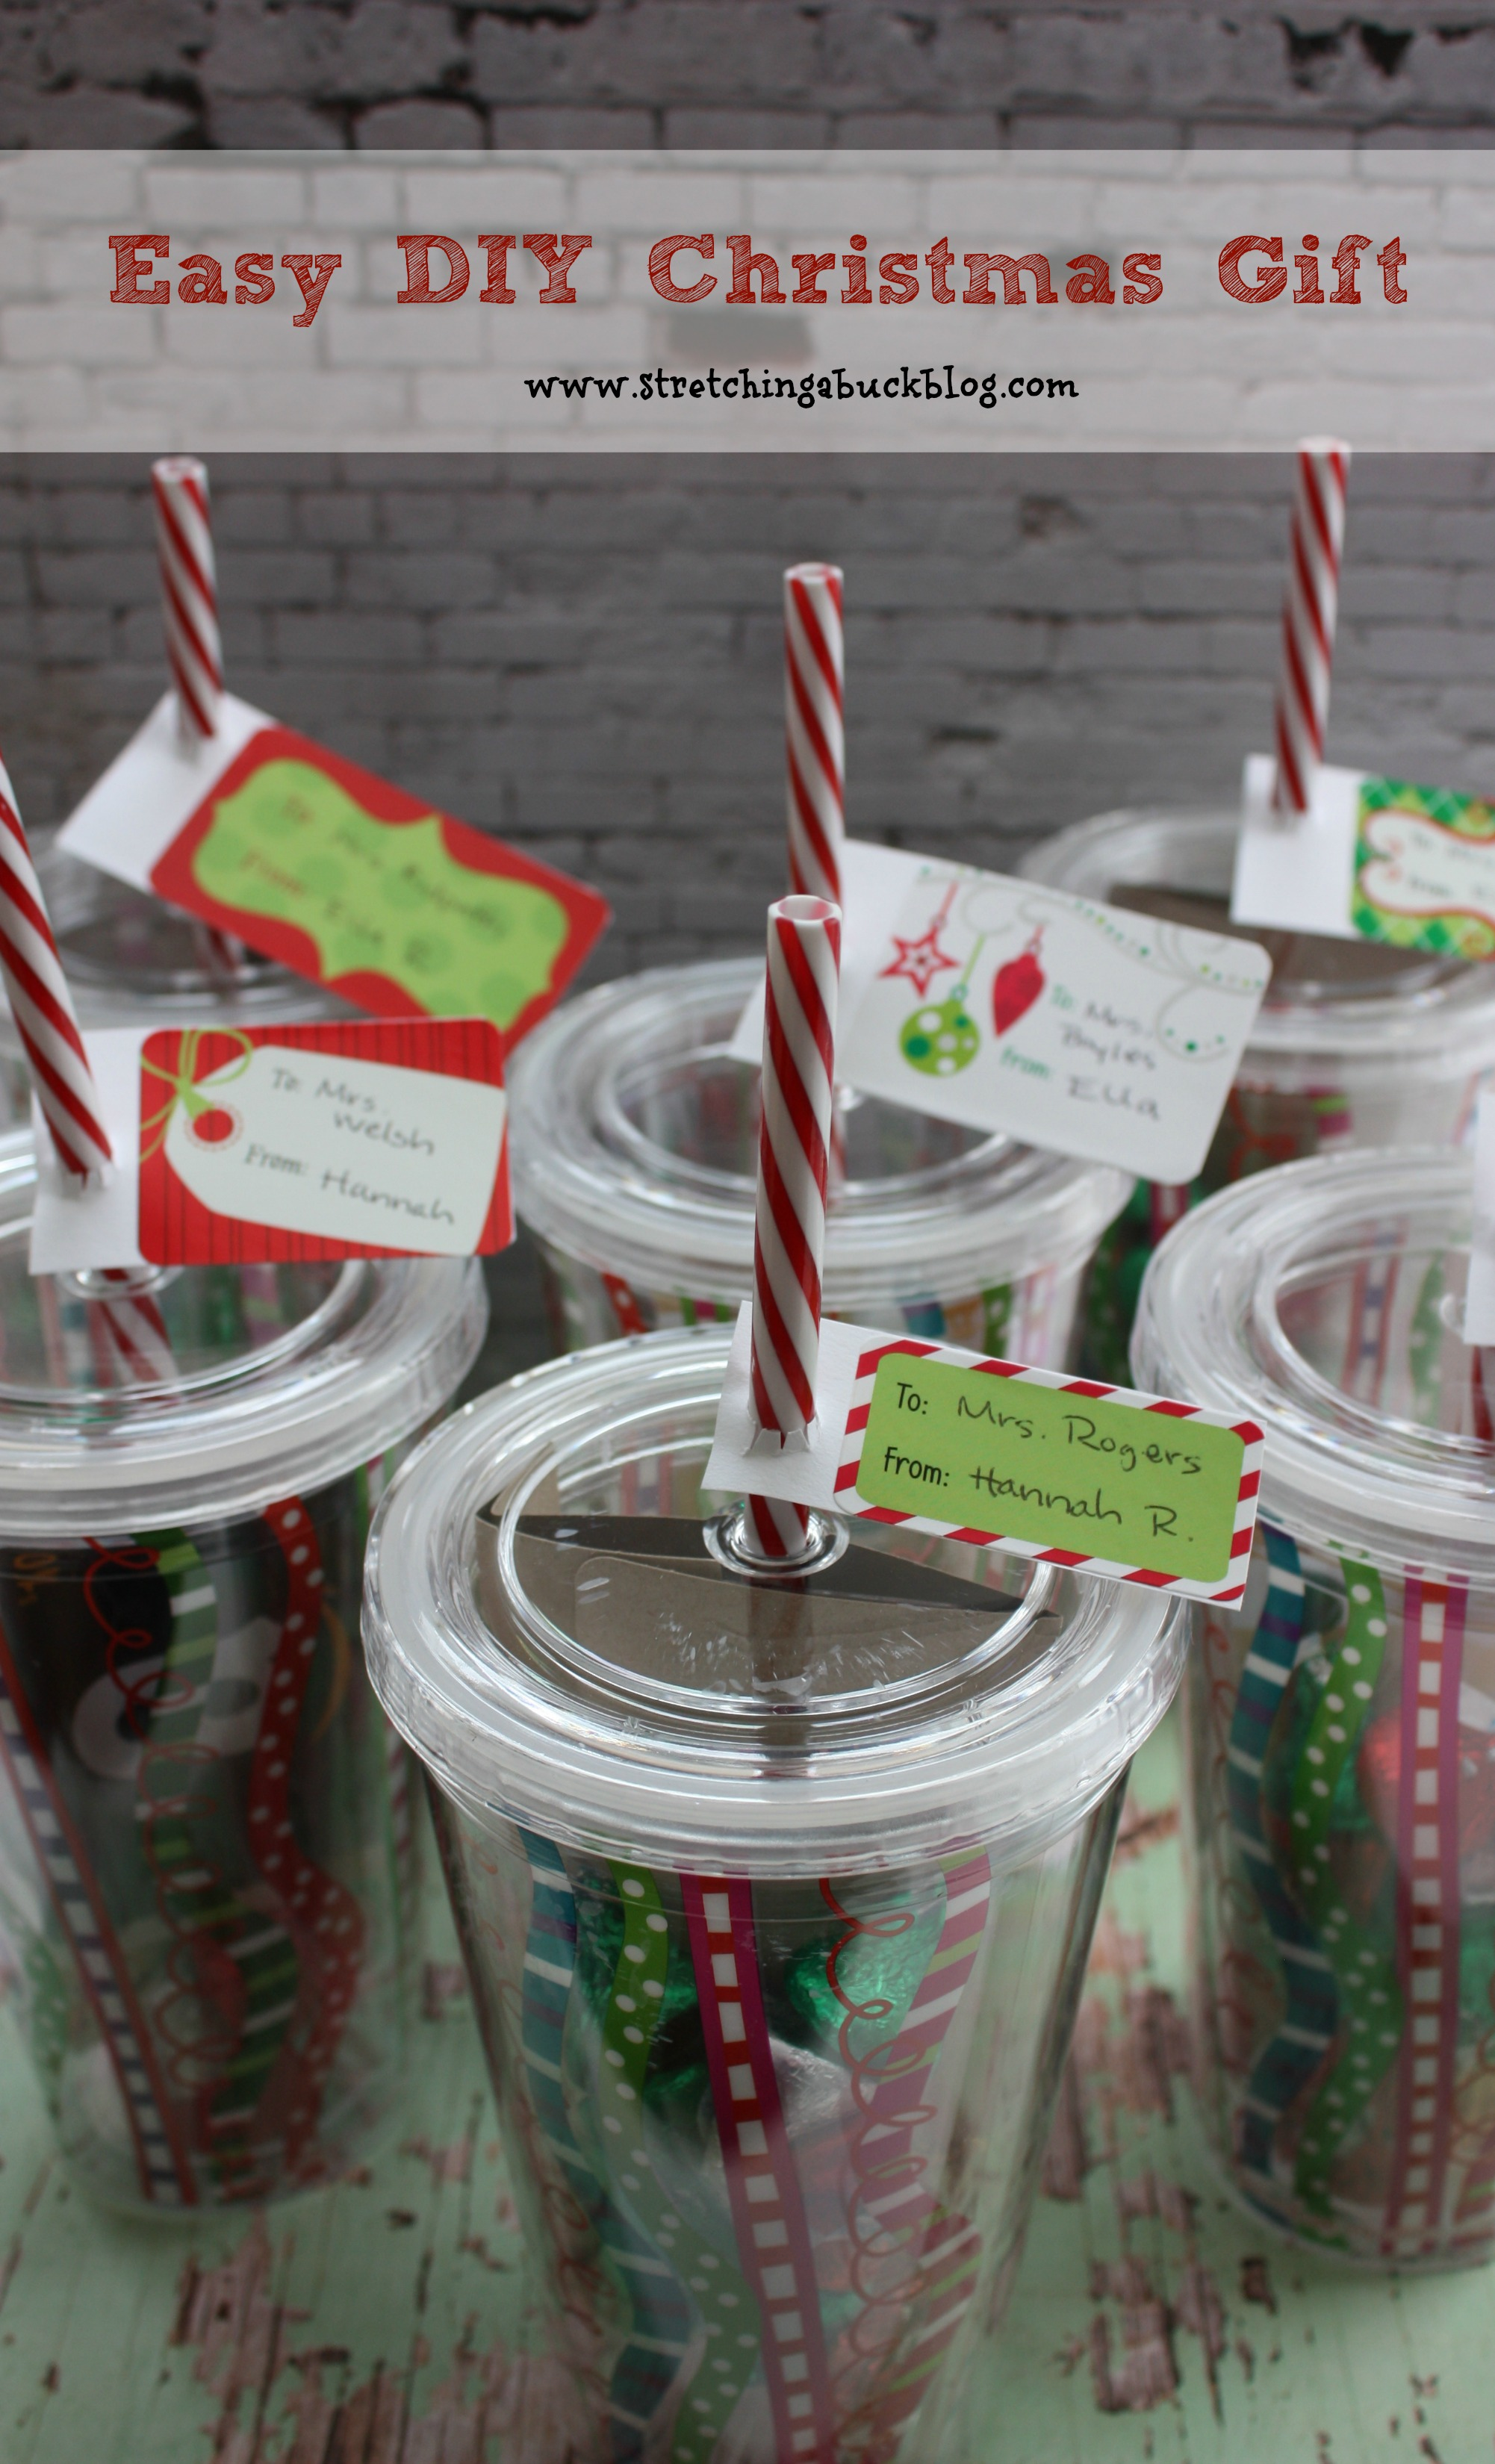 Cute Christmas Ideas For Friends.Easy Diy Christmas Gift Idea For Teachers Friends More